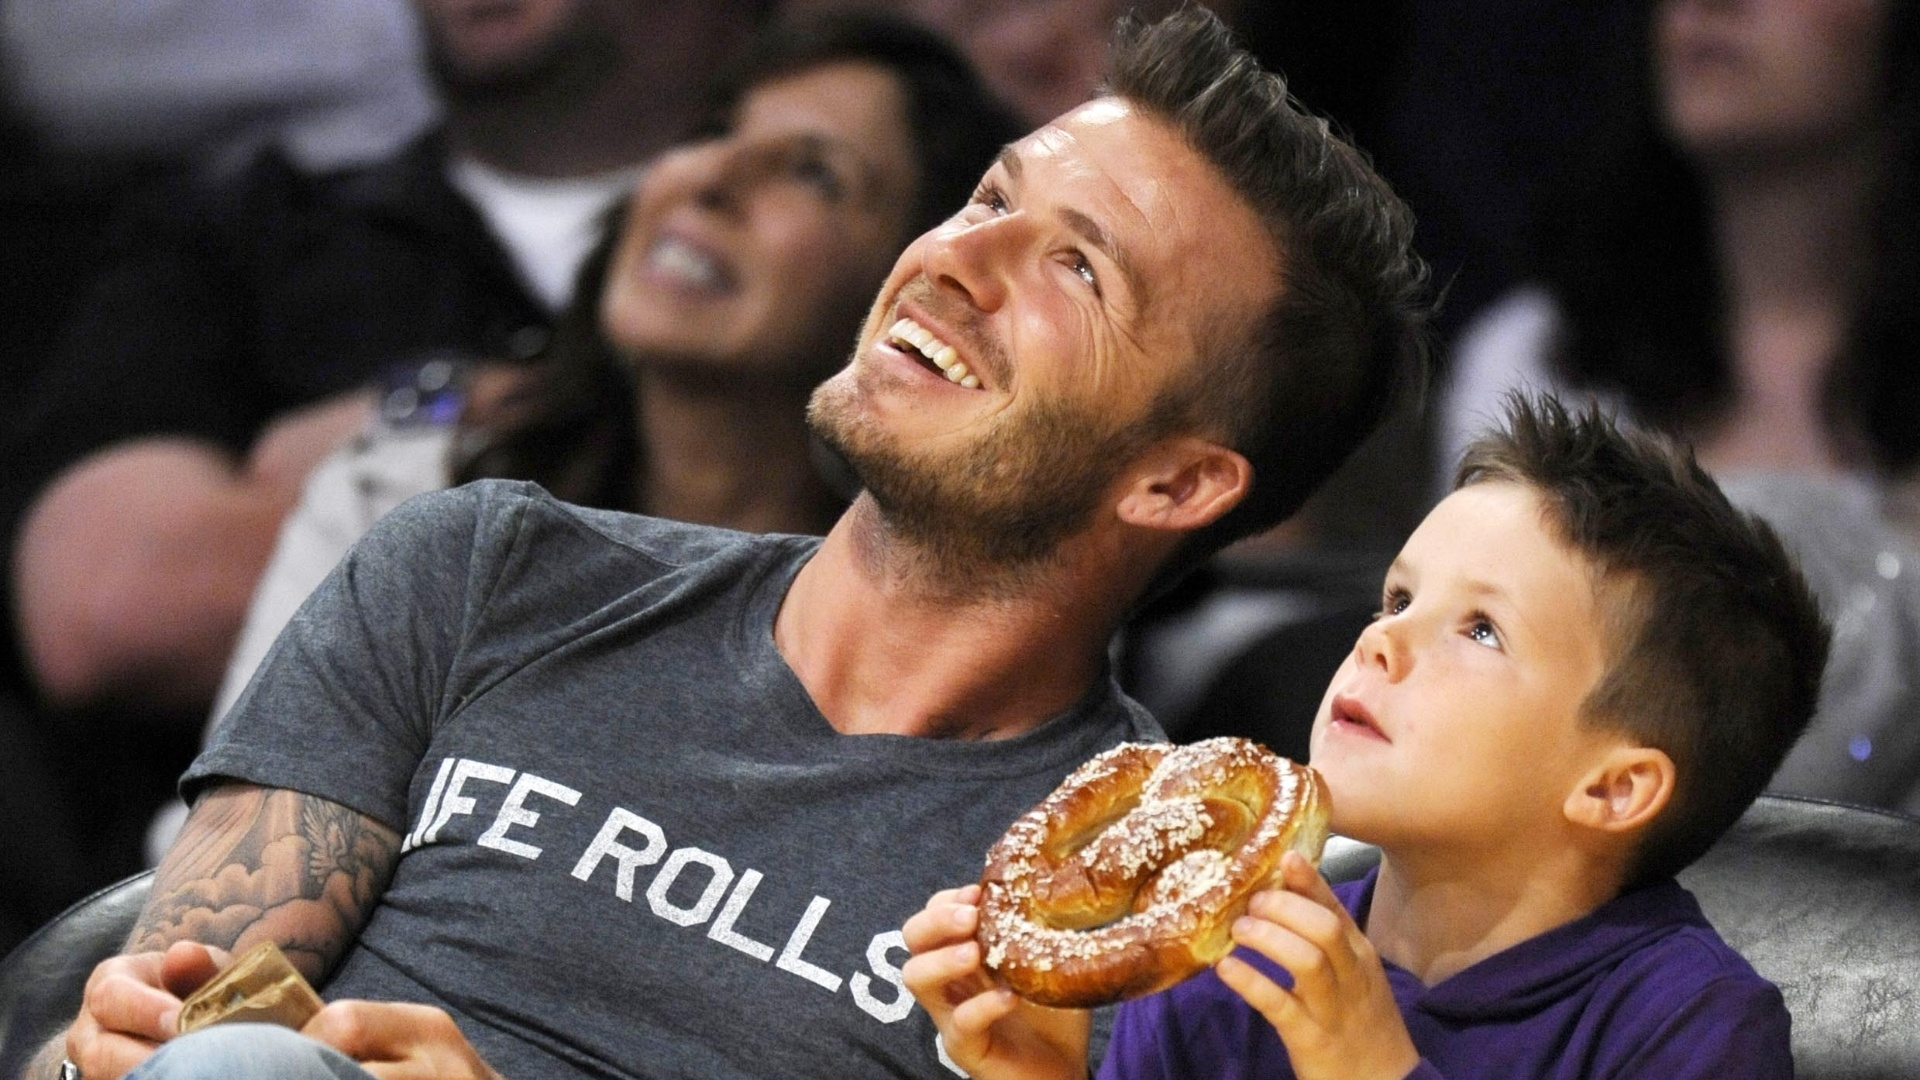 Ao lado do filho Cruz, David Beckham assiste ao jogo do Los Angeles Lakers e Dallas Mavericks em Los Angeles (15/4/12)